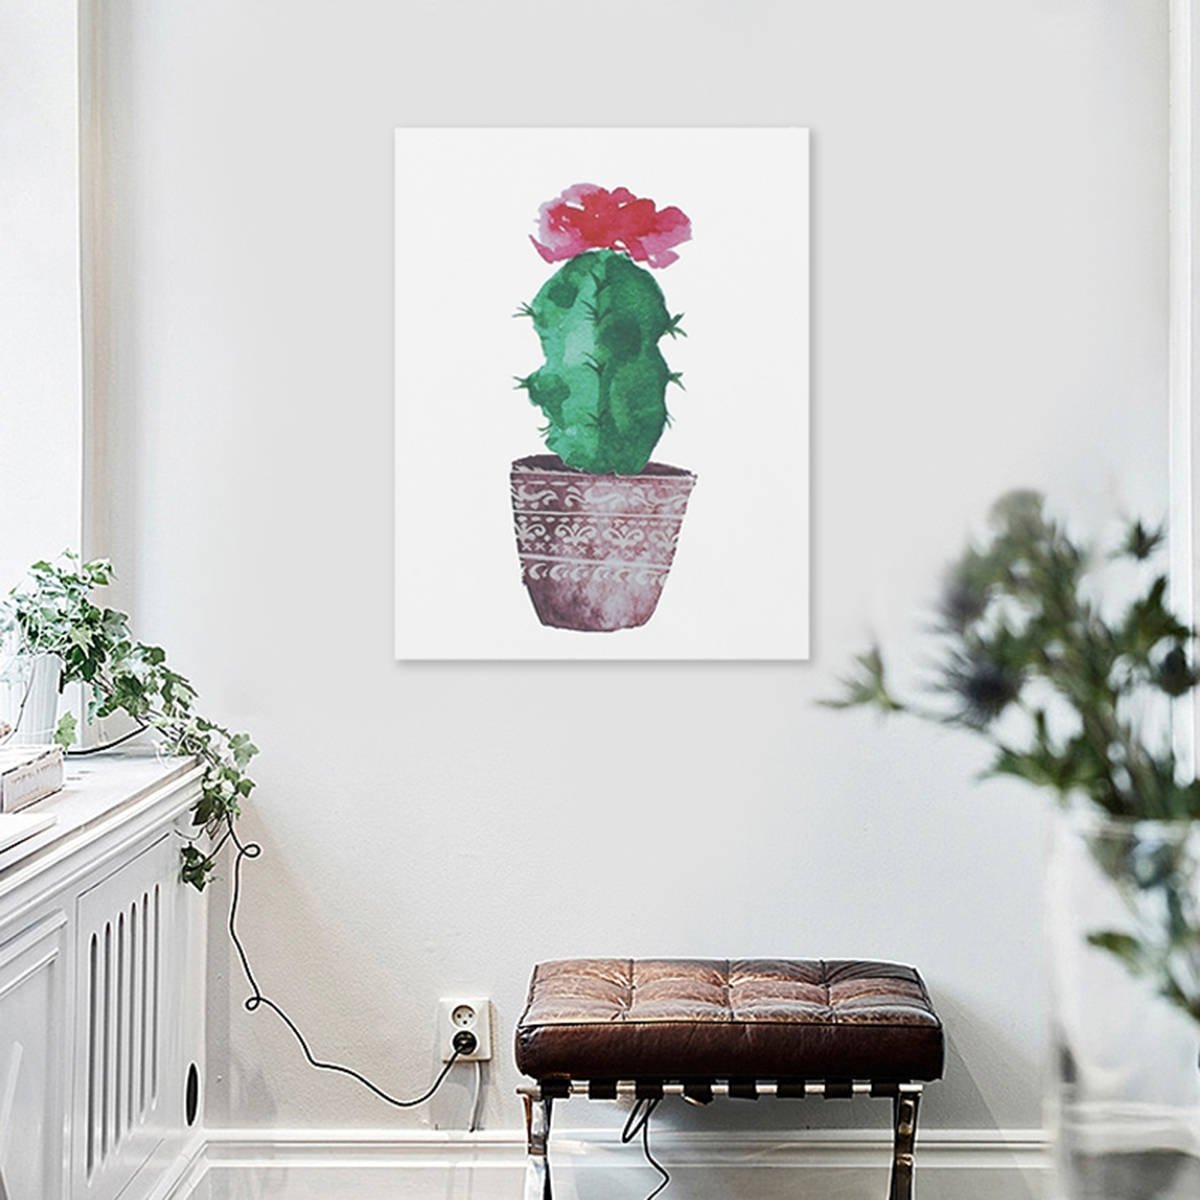 Widely Used Watercolor Canvas Cactus Painting Print Picture Modern Home Wall Art Within Cactus Wall Art (View 20 of 20)